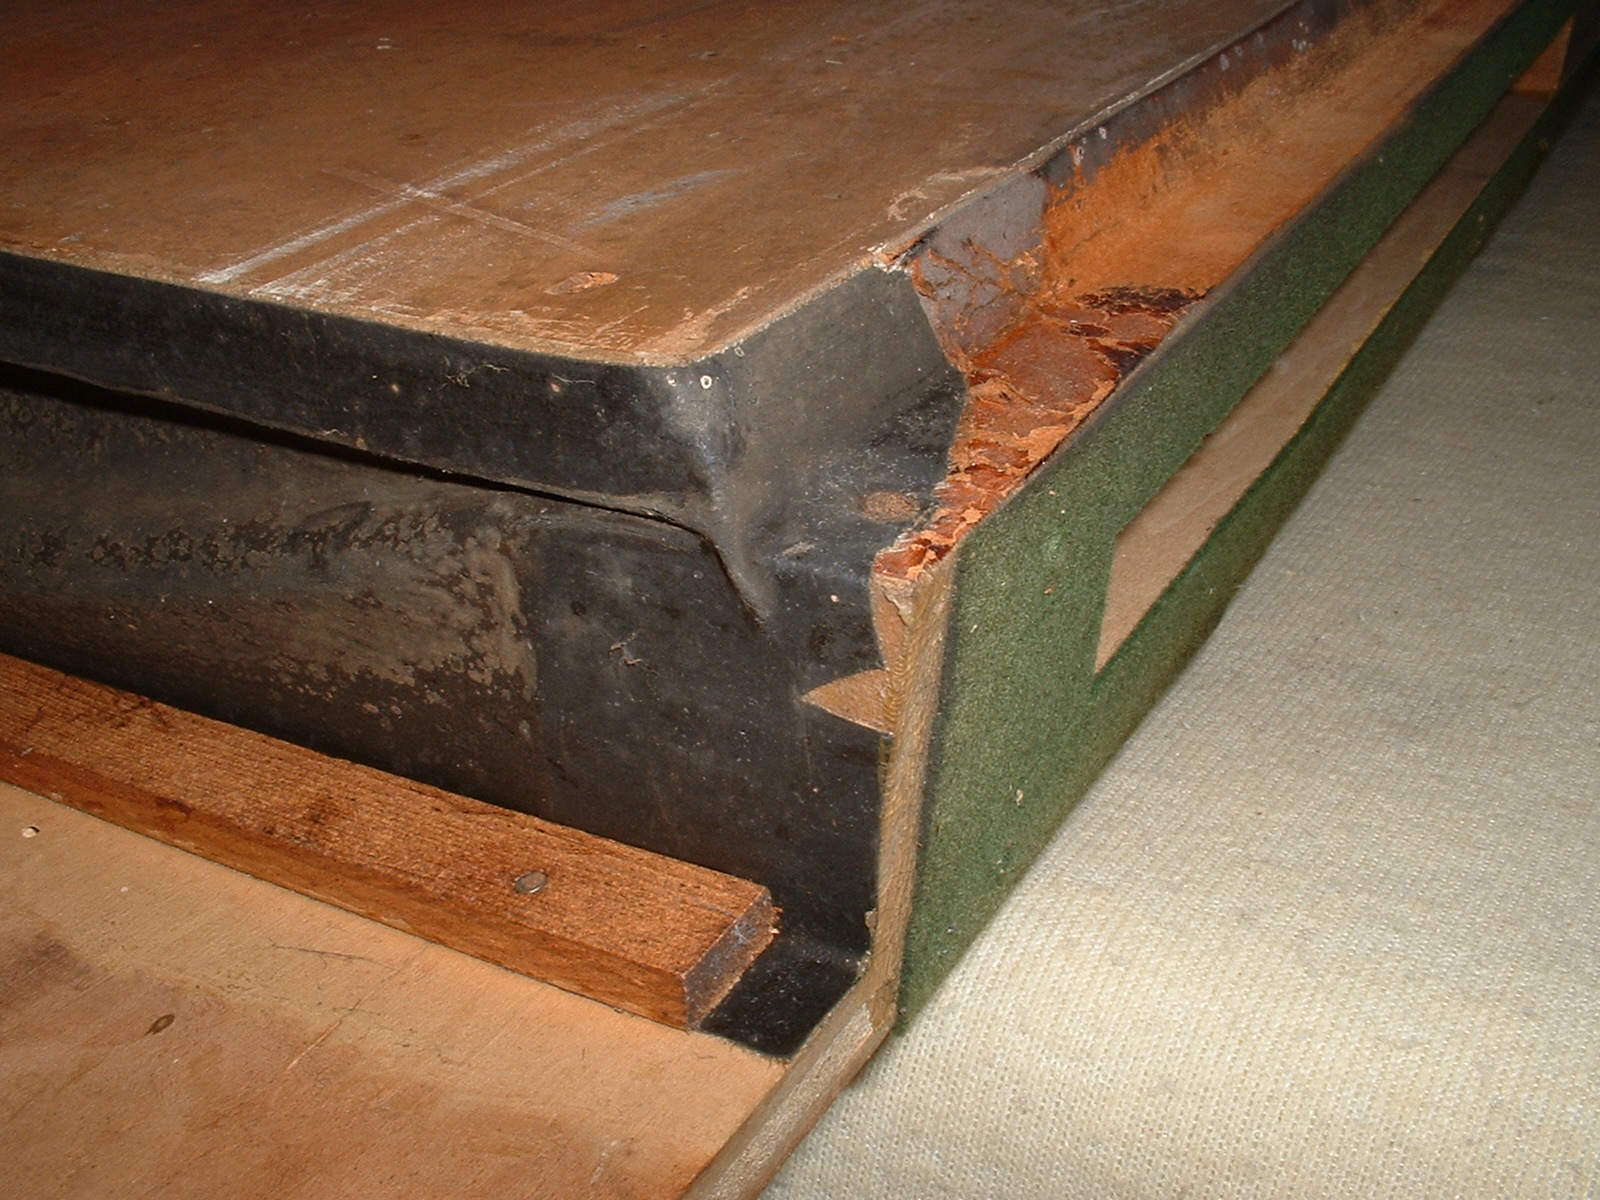 Worn out bellows cloth